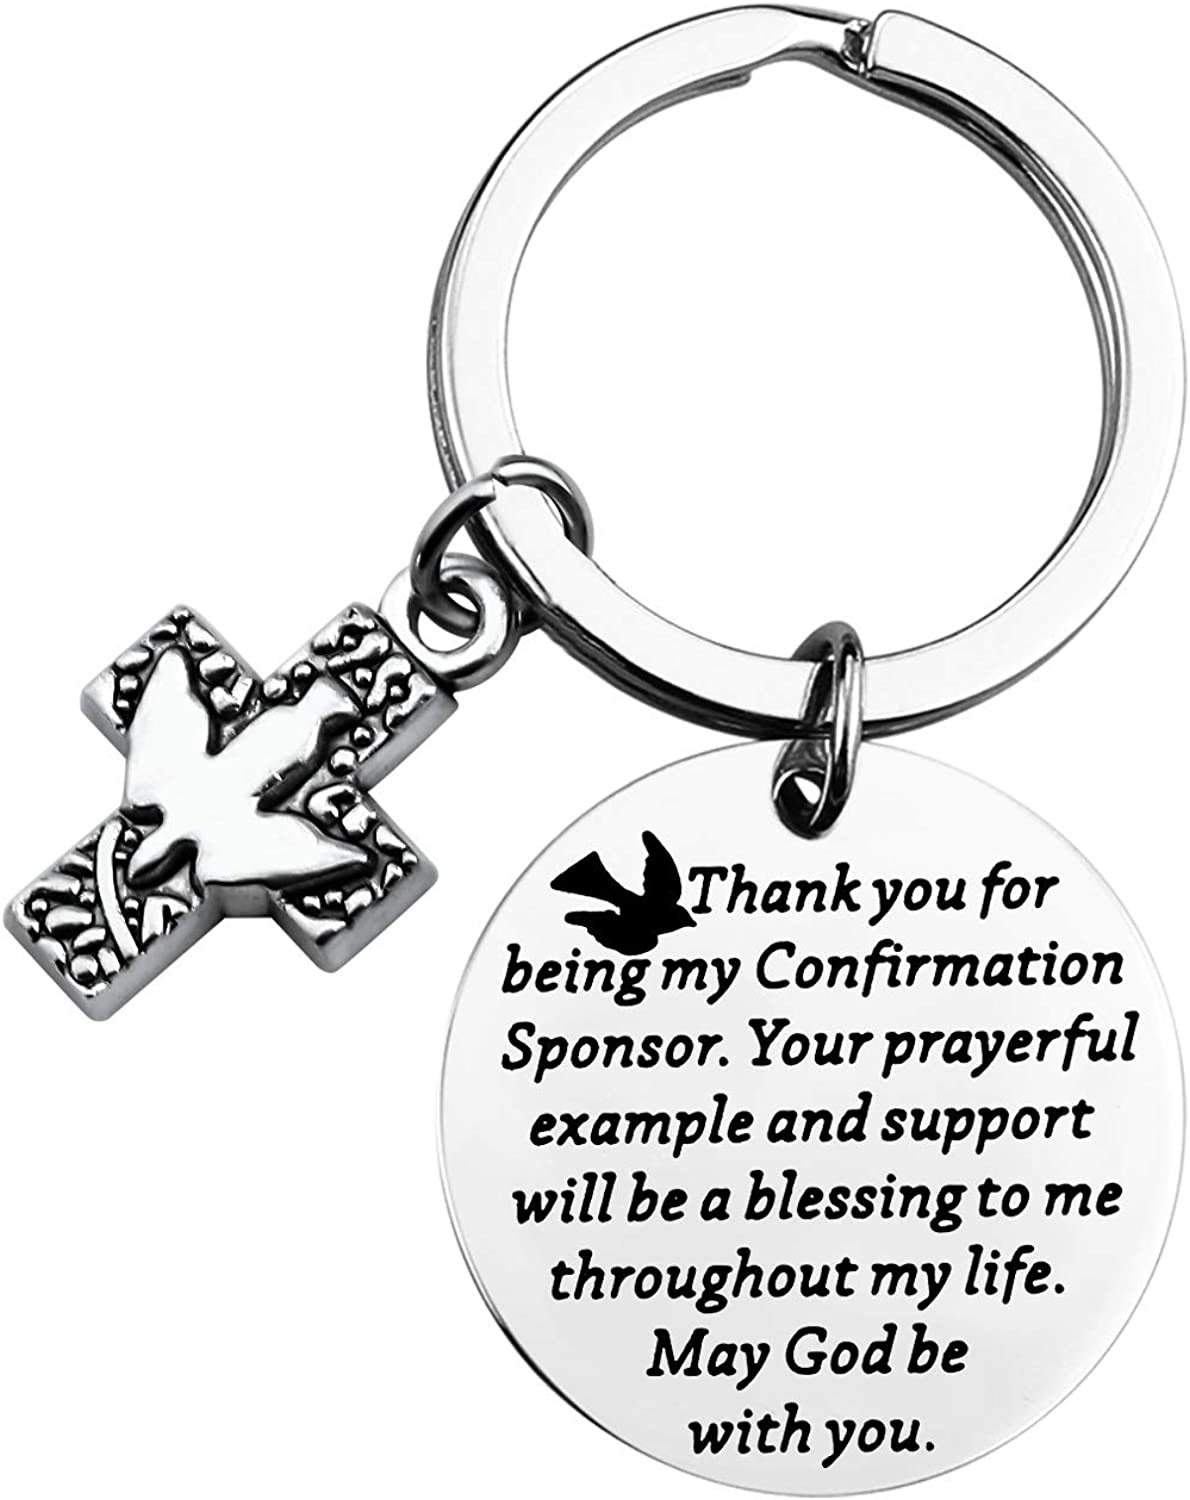 TIIMG Confirmation Sponsor Gift Thank You for Being My Confirmation Sponsor Keychain Confirmation Sponsor Thank You Gift Religious Sponsor Gift